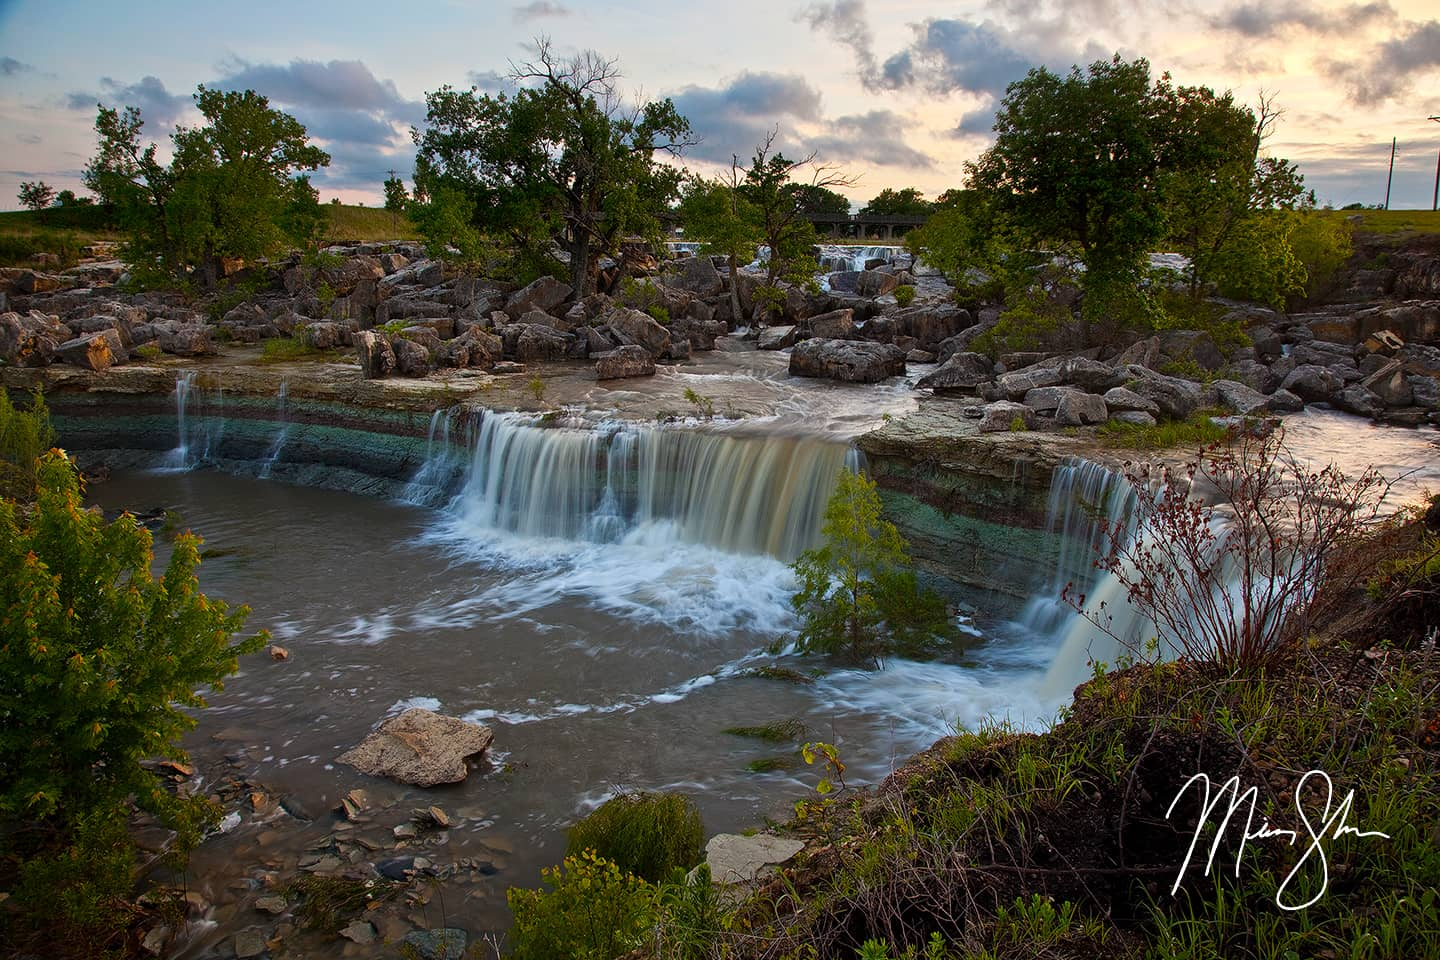 Open edition fine art print of Sunset at Lake Kahola Falls from Mickey Shannon Photography. Location: Lake Kahola, Kansas